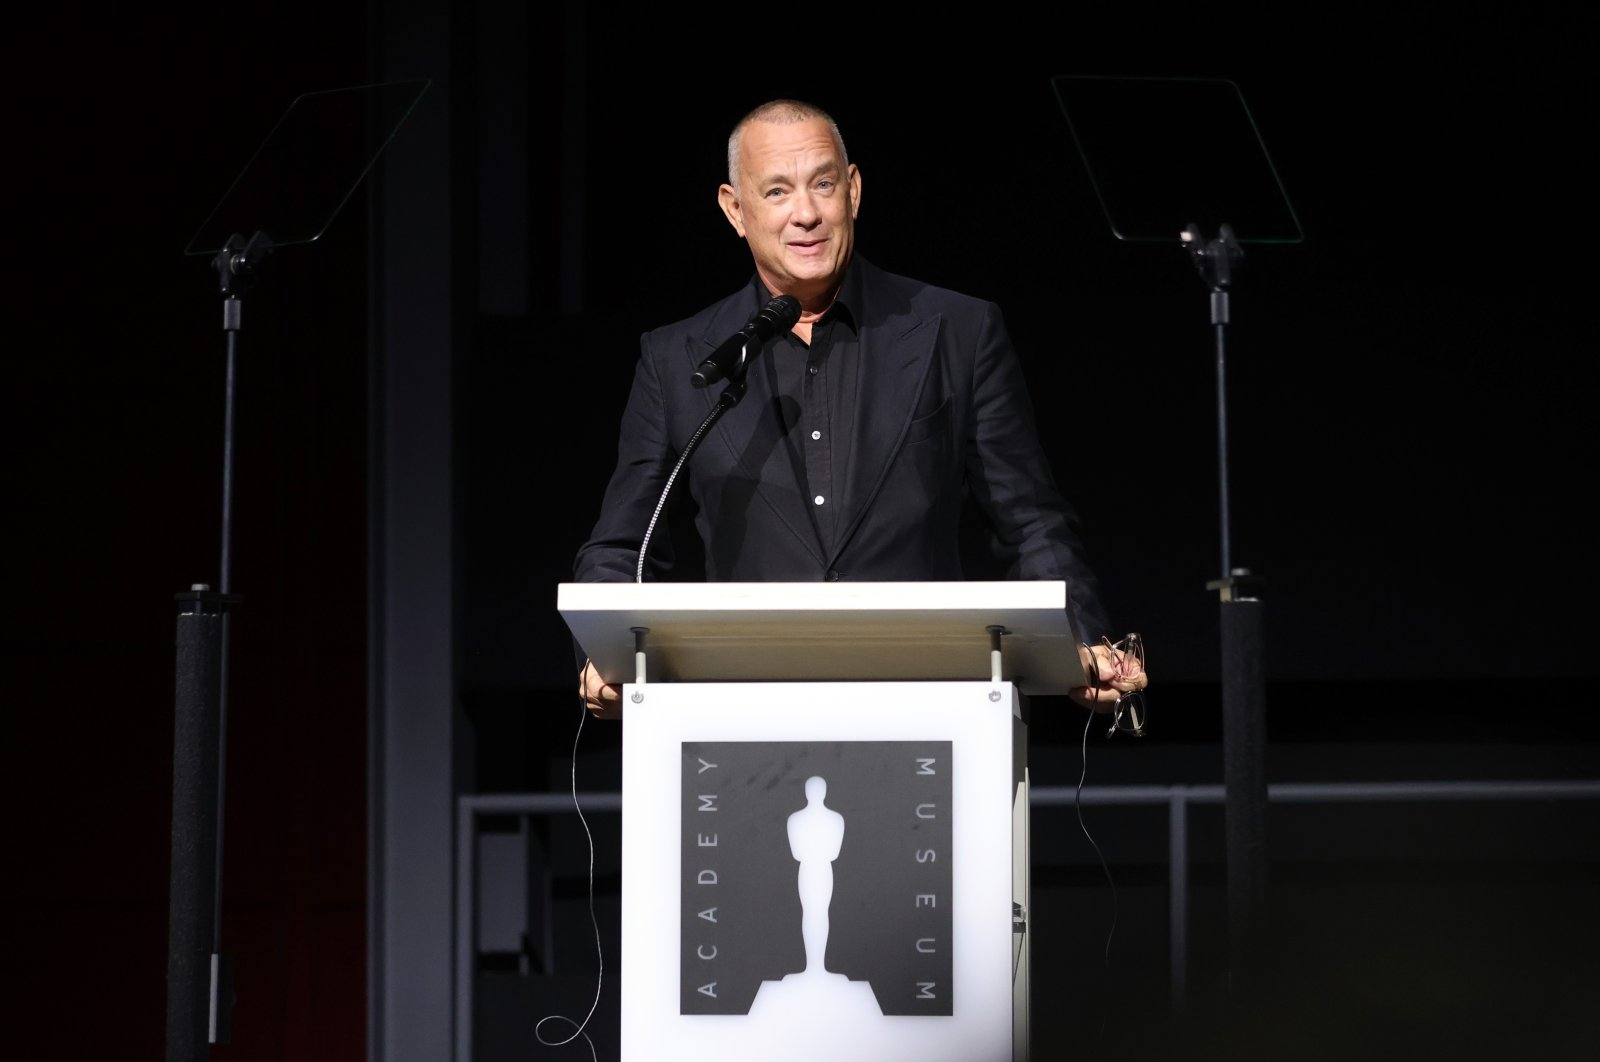 Academy Museum of Motion Pictures trustee Tom Hanks speaks onstage during a press conference at the museum in Los Angeles, California, U.S., Sept. 21, 2021. (AFP Photo)